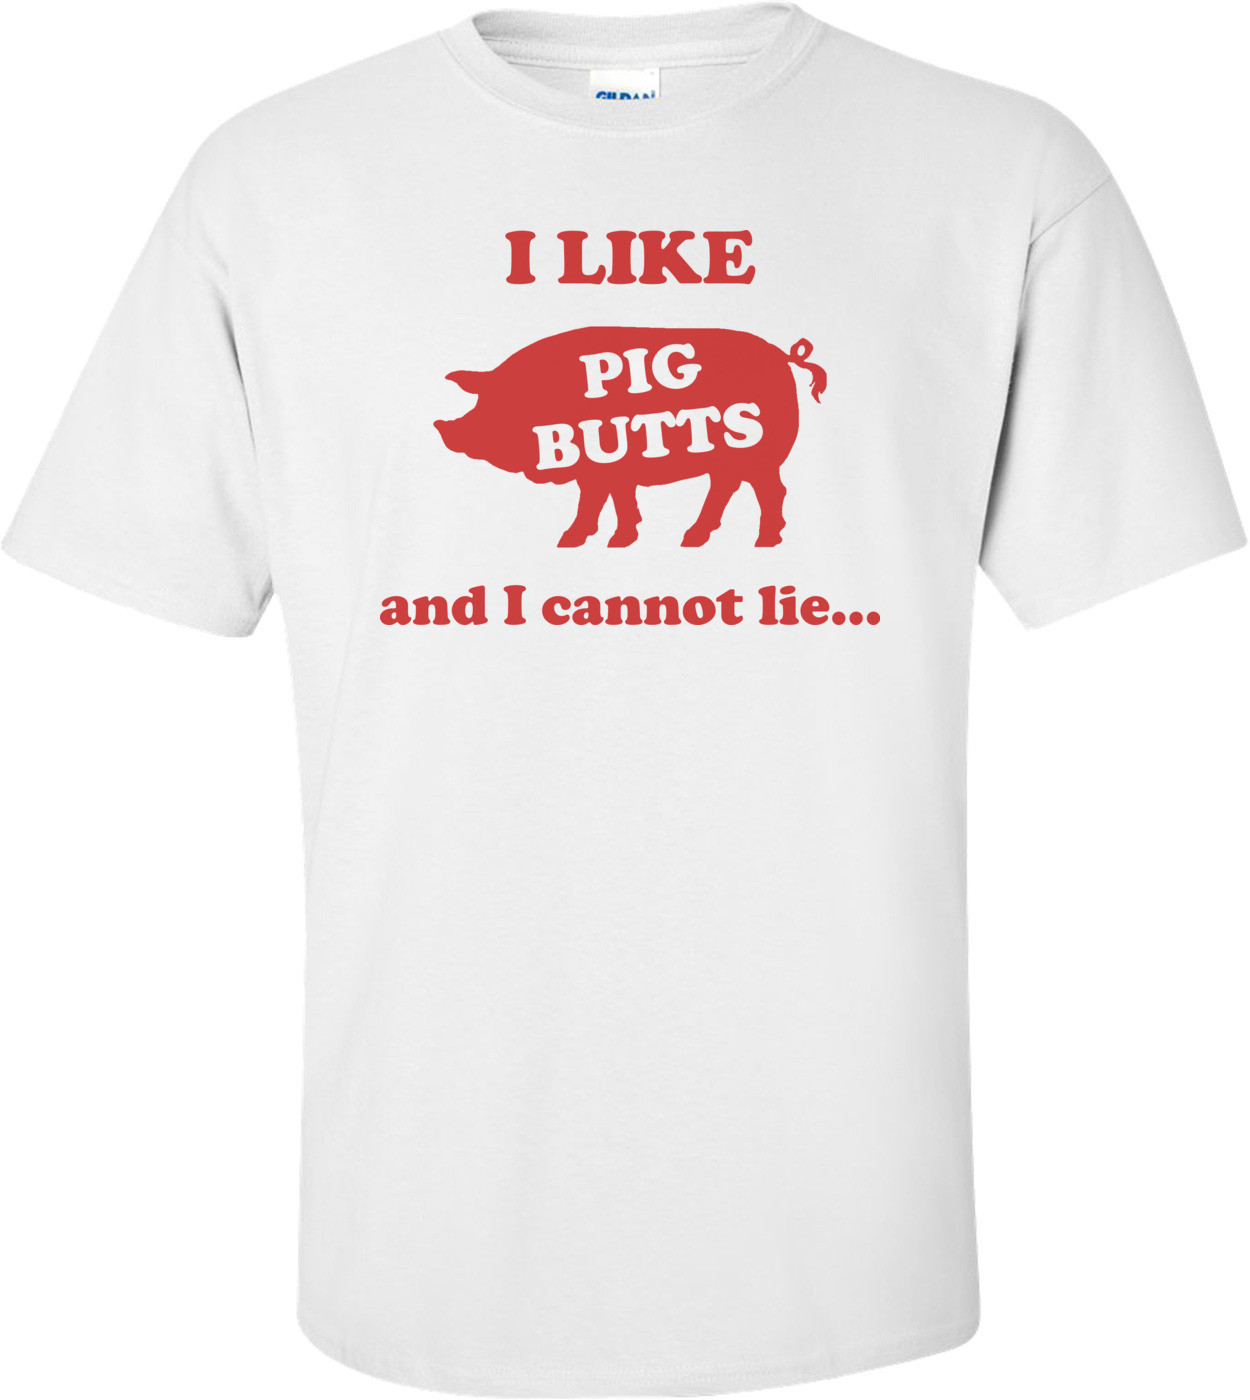 I Like Pig Butts And I Cannot Lie Shirt